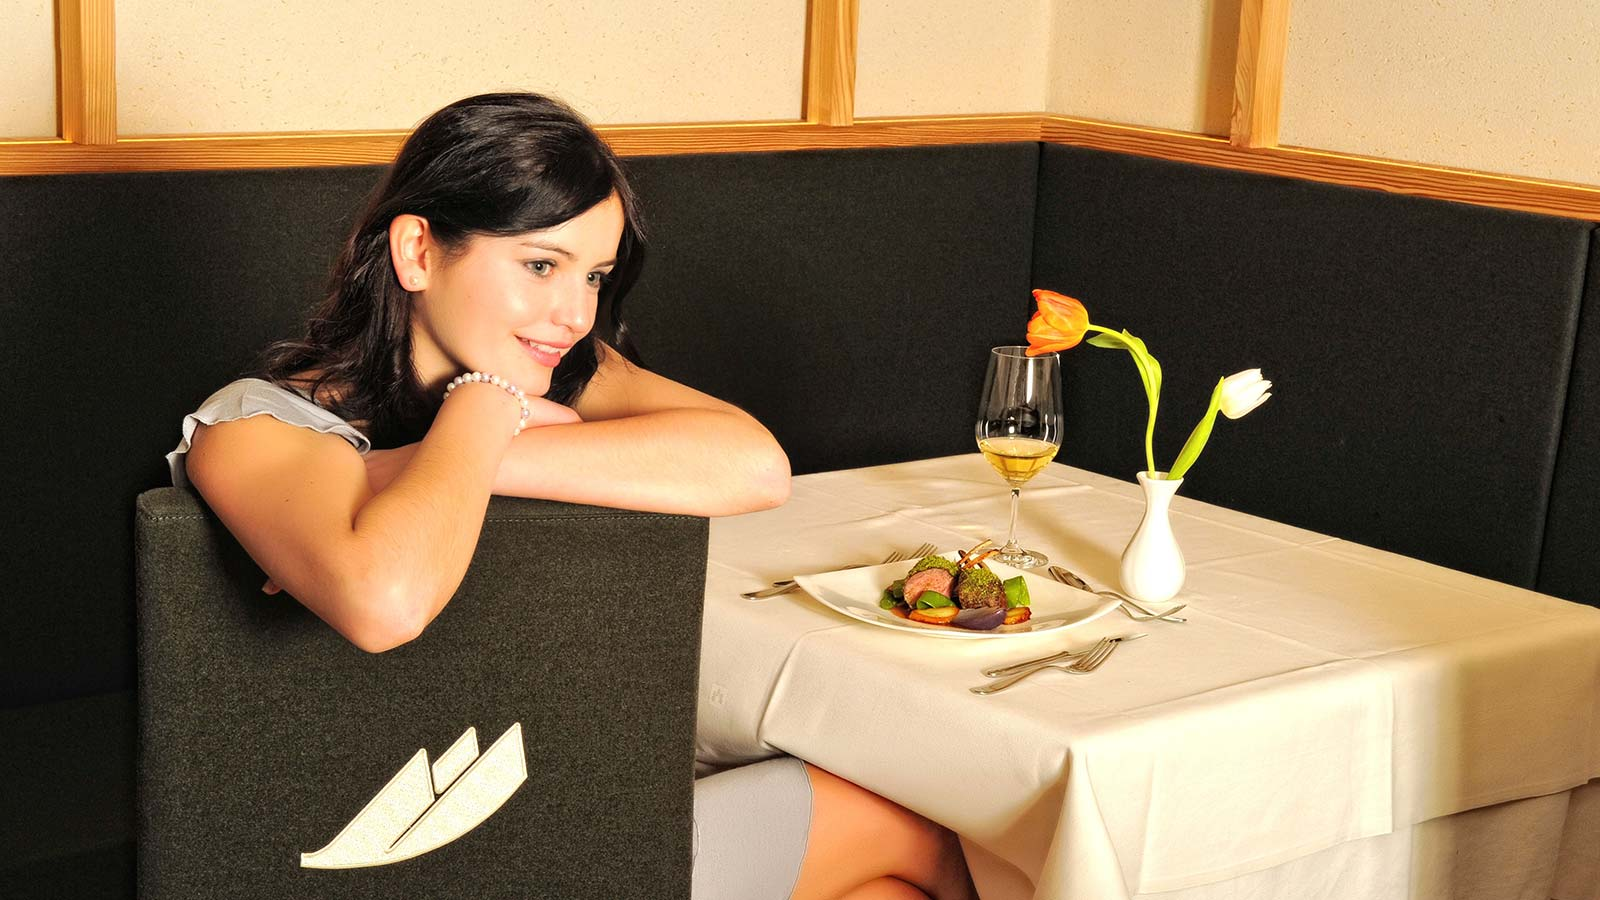 Girl in front of a table with gourmet dish and wine chalice lays her arms on the chair's backrest